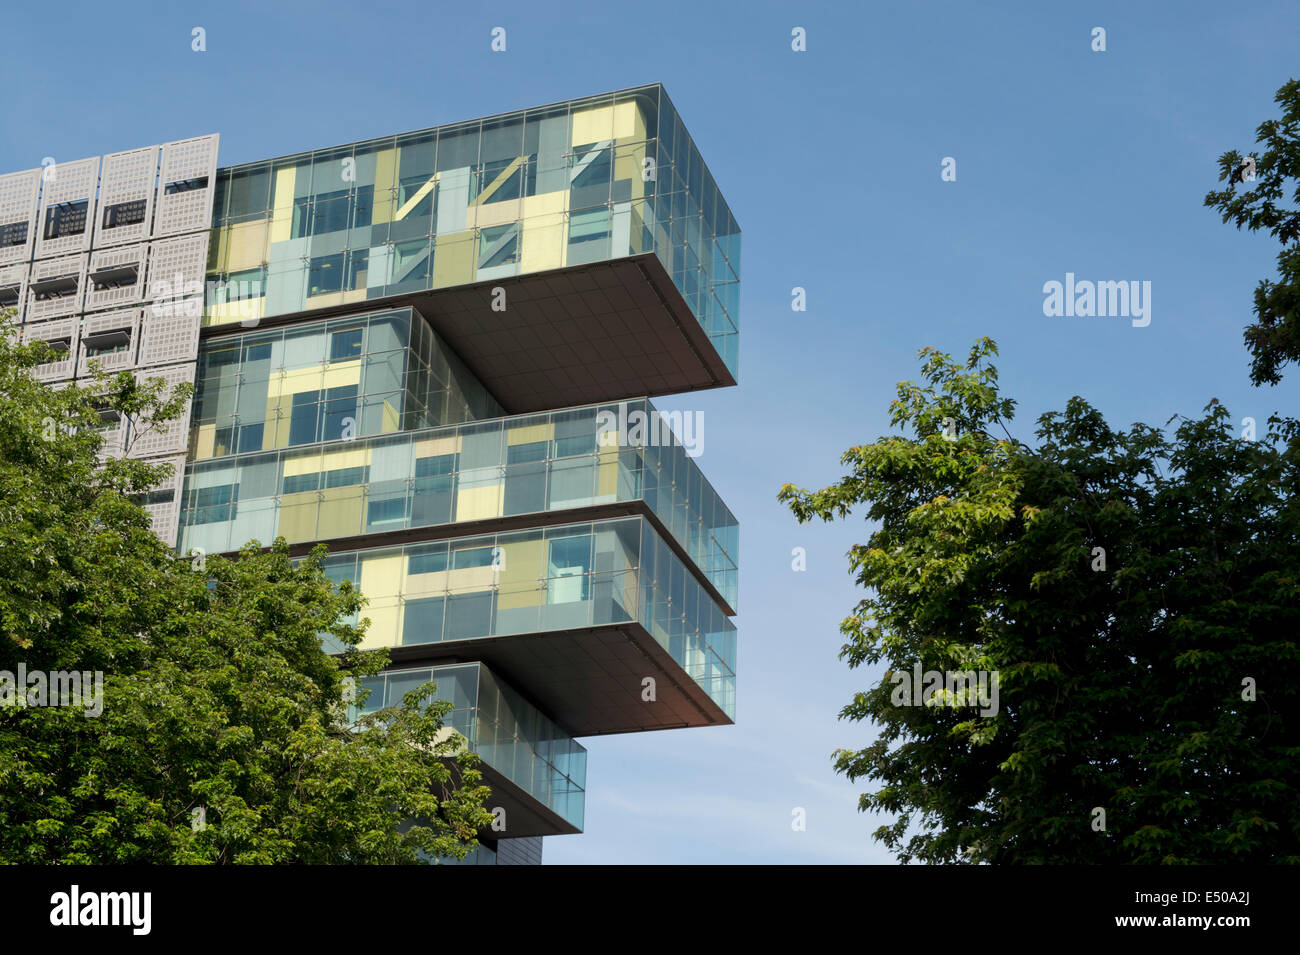 Manchester Civil Justice Centre on Bridge Street in Manchester UK, close to the law courts. - Stock Image